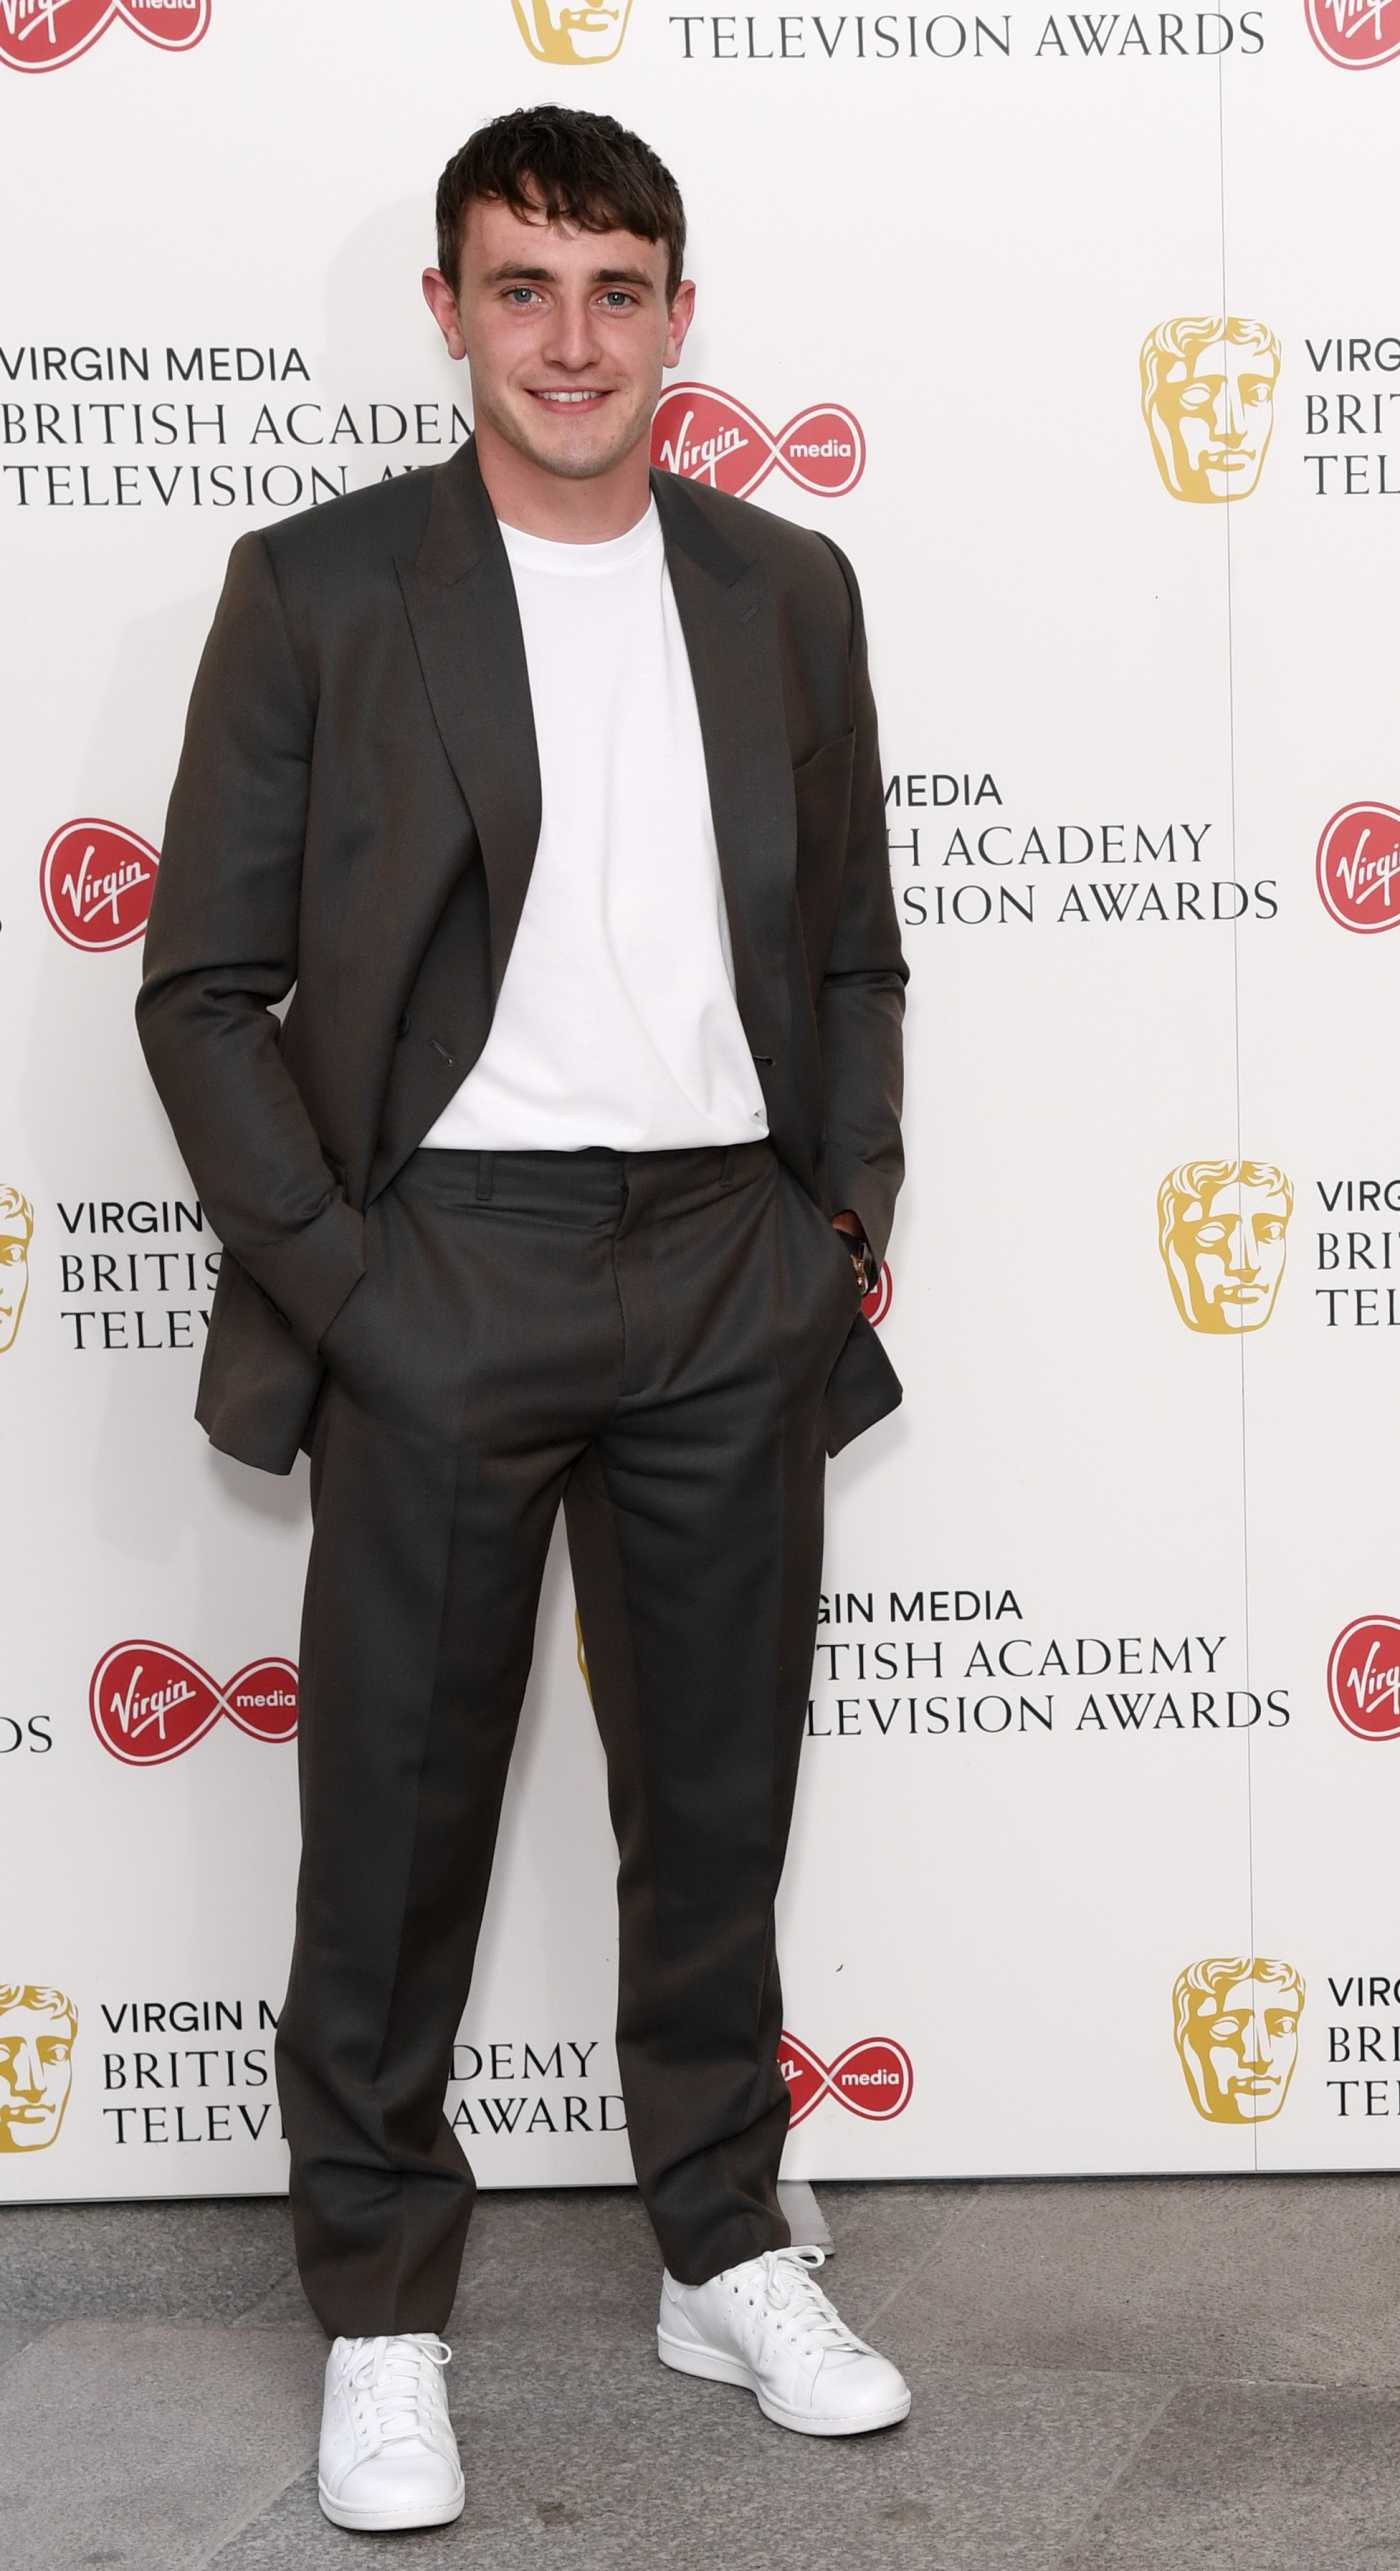 Paul Mescal Attends 2020 Virgin Media British Academy Television Awards in London 07/31/2020